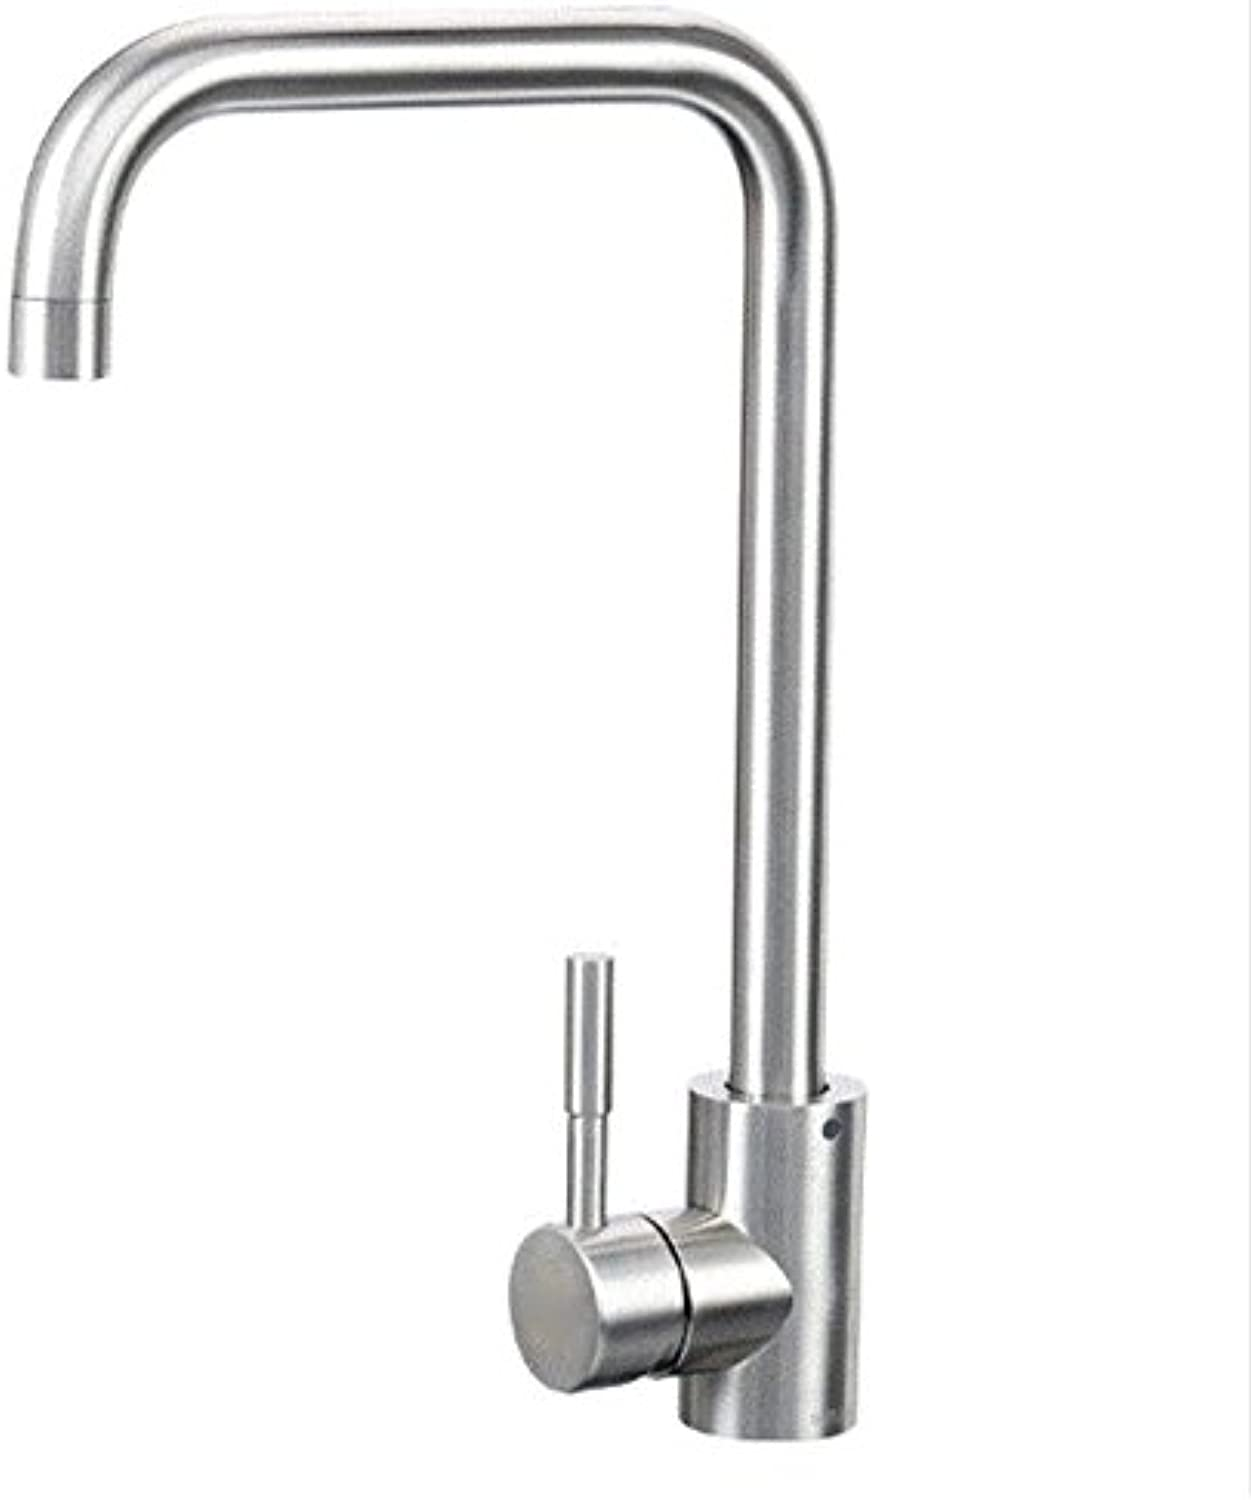 Commercial Single Lever Pull Down Kitchen Sink Faucet Brass Constructed Stainless Steel Seven-Word Hot and Cold Water Faucet, Kitchen Faucet, Sink redating Faucet, Basin Heightening Sink Sink Faucet